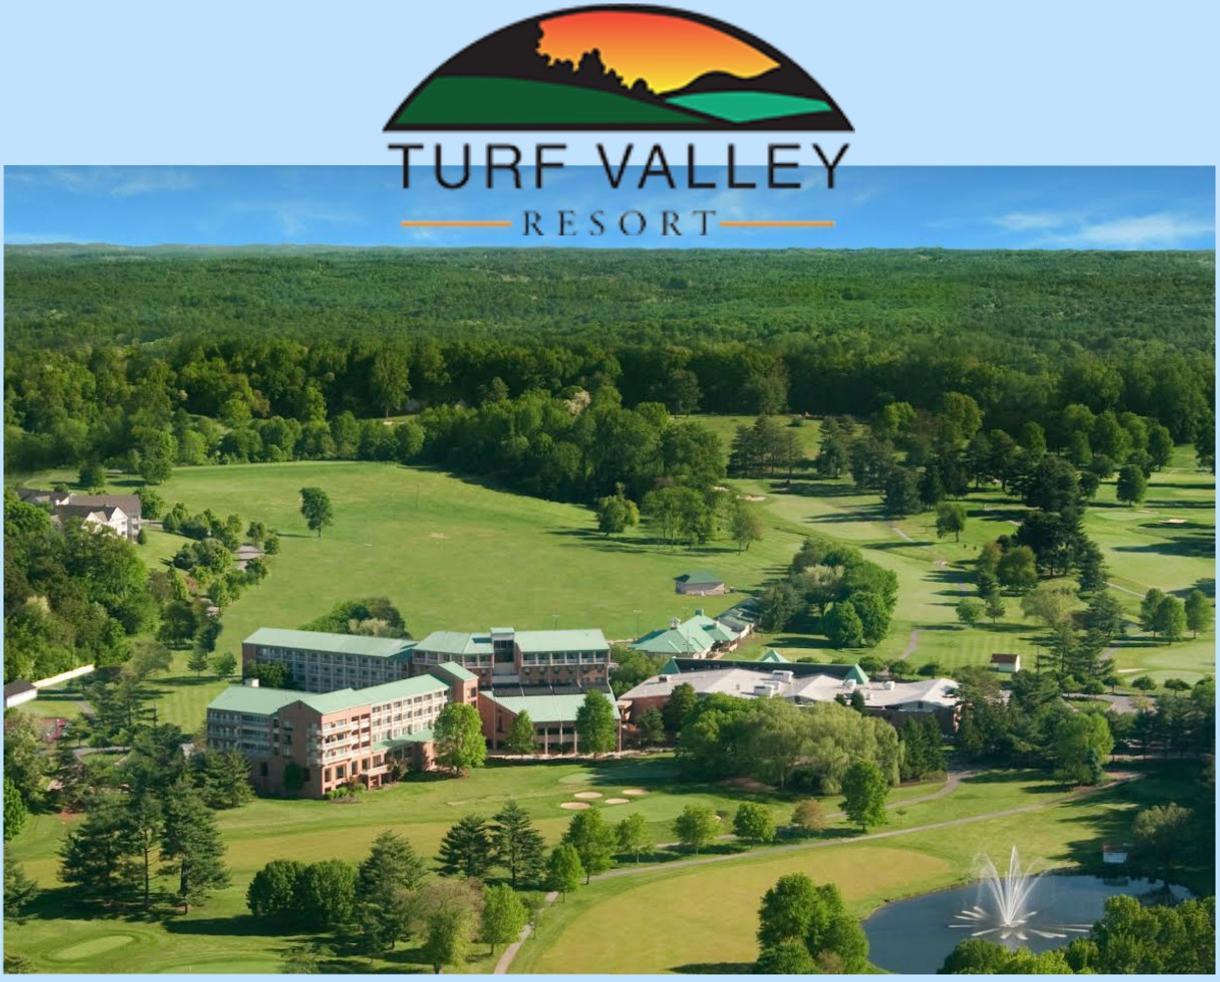 $117+ for Turf Valley Resort 1-Night Getaway & Breakfast + GOLF OPTION (50% Off)